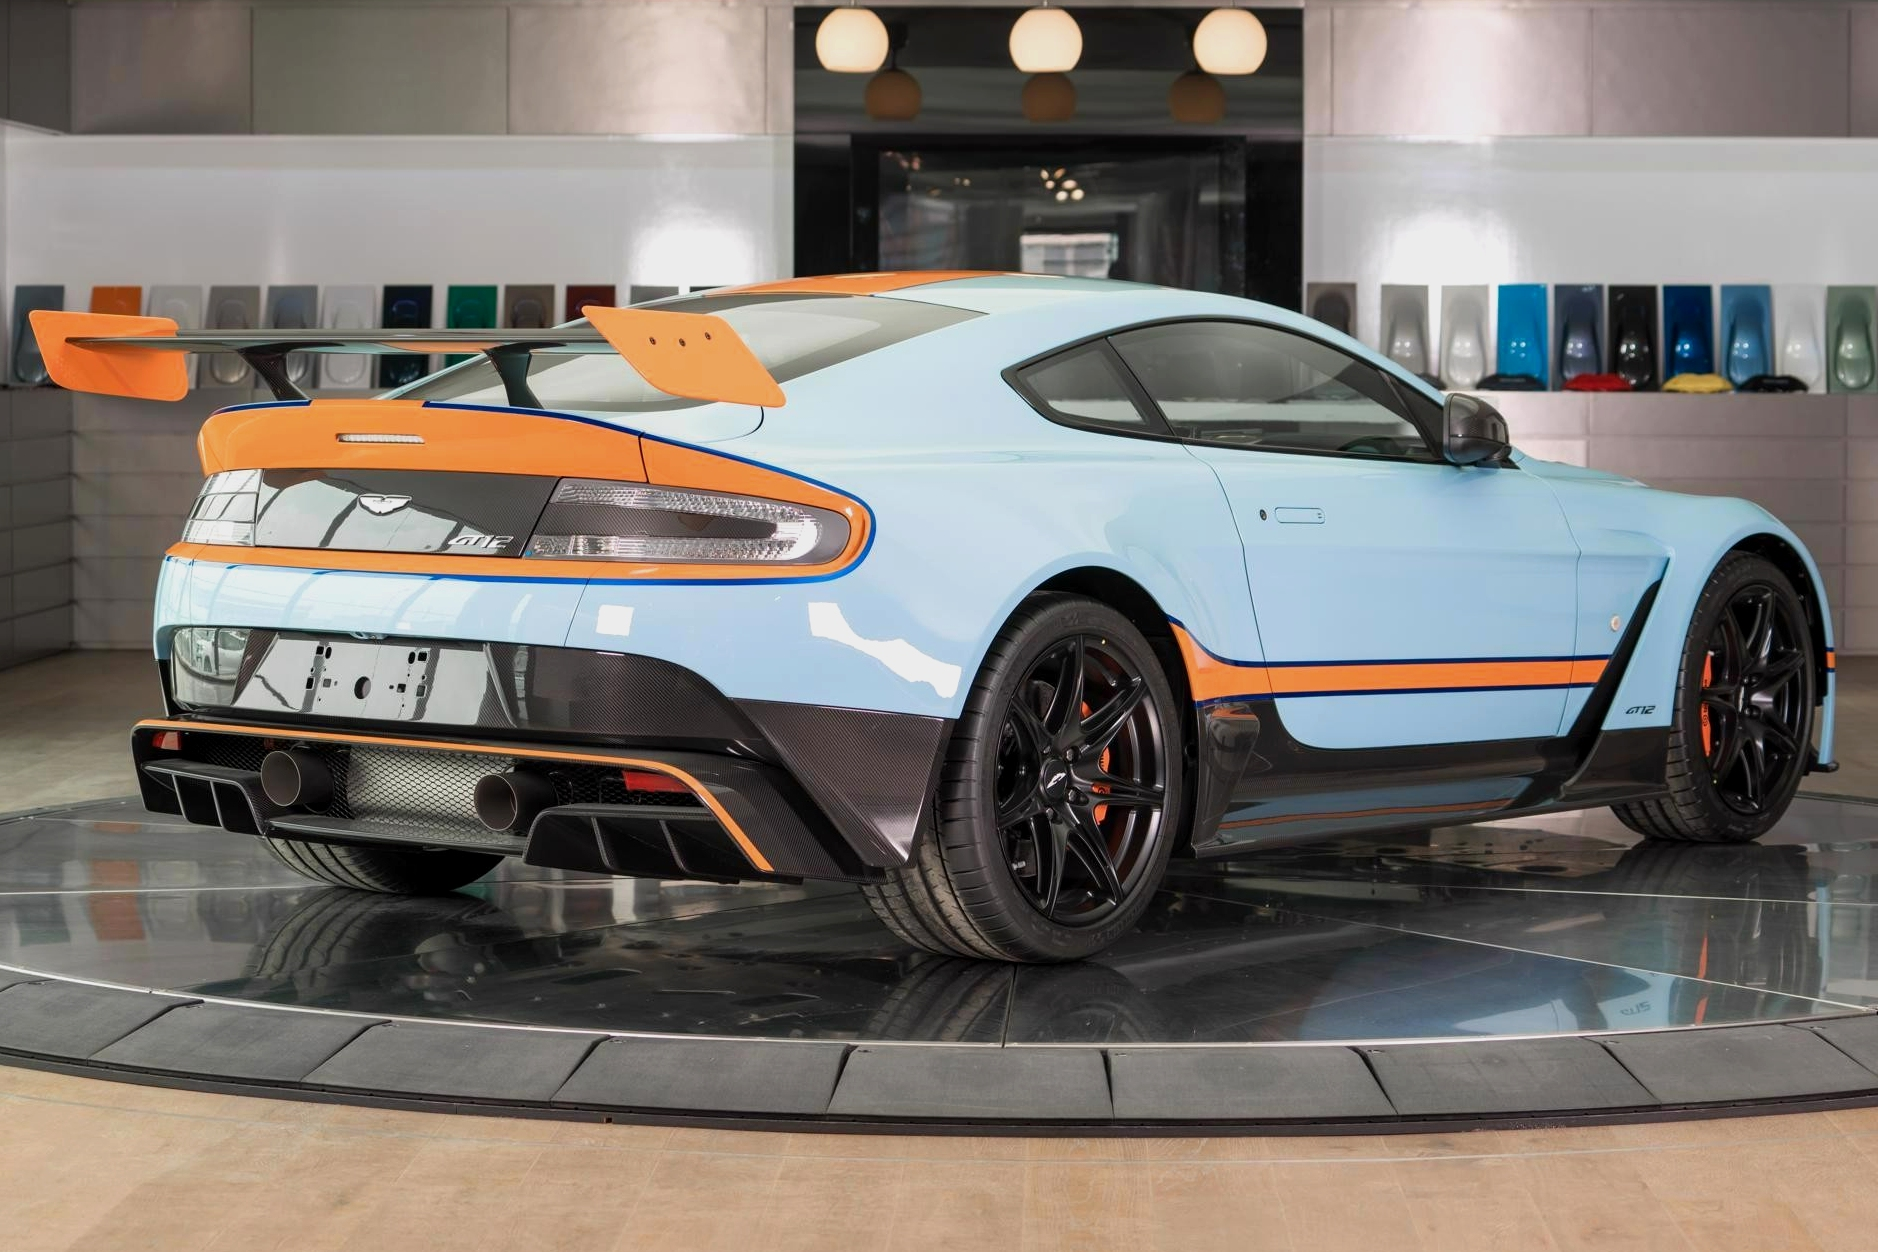 How Much Is An Aston Martin Vantage Coolest V12 V8 Cars With Prices